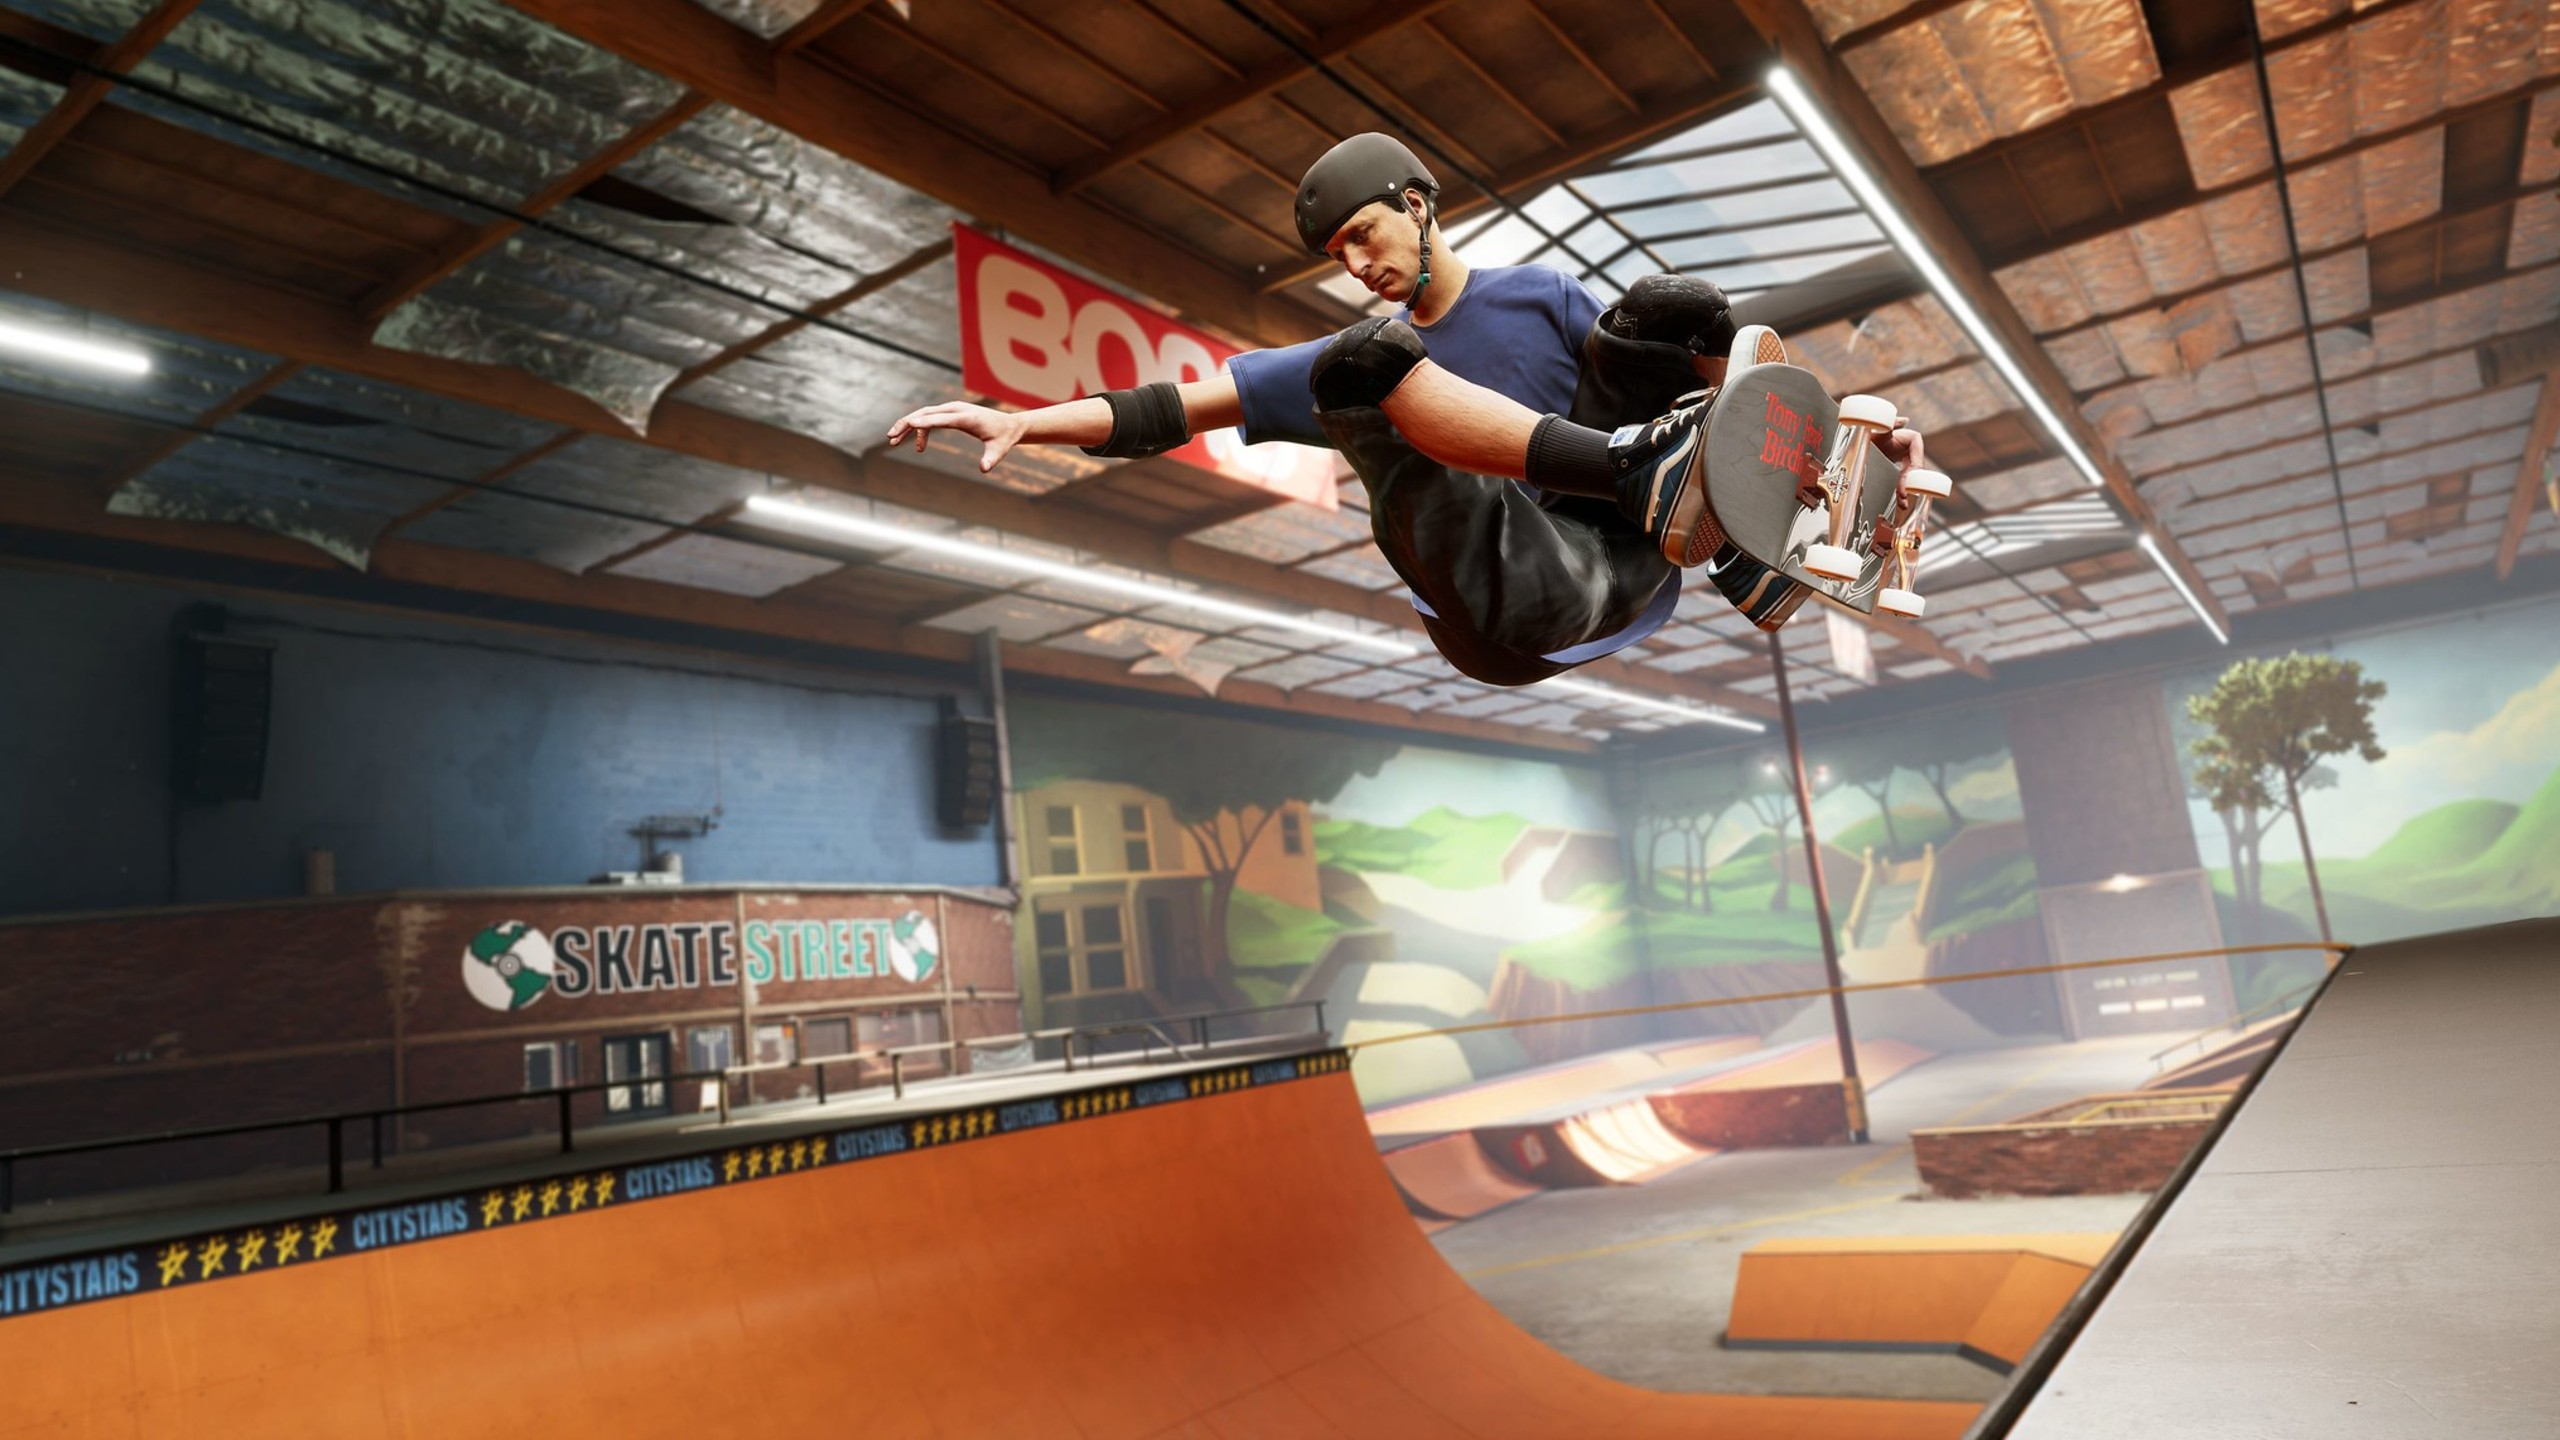 Pro Skater Switch Release Date